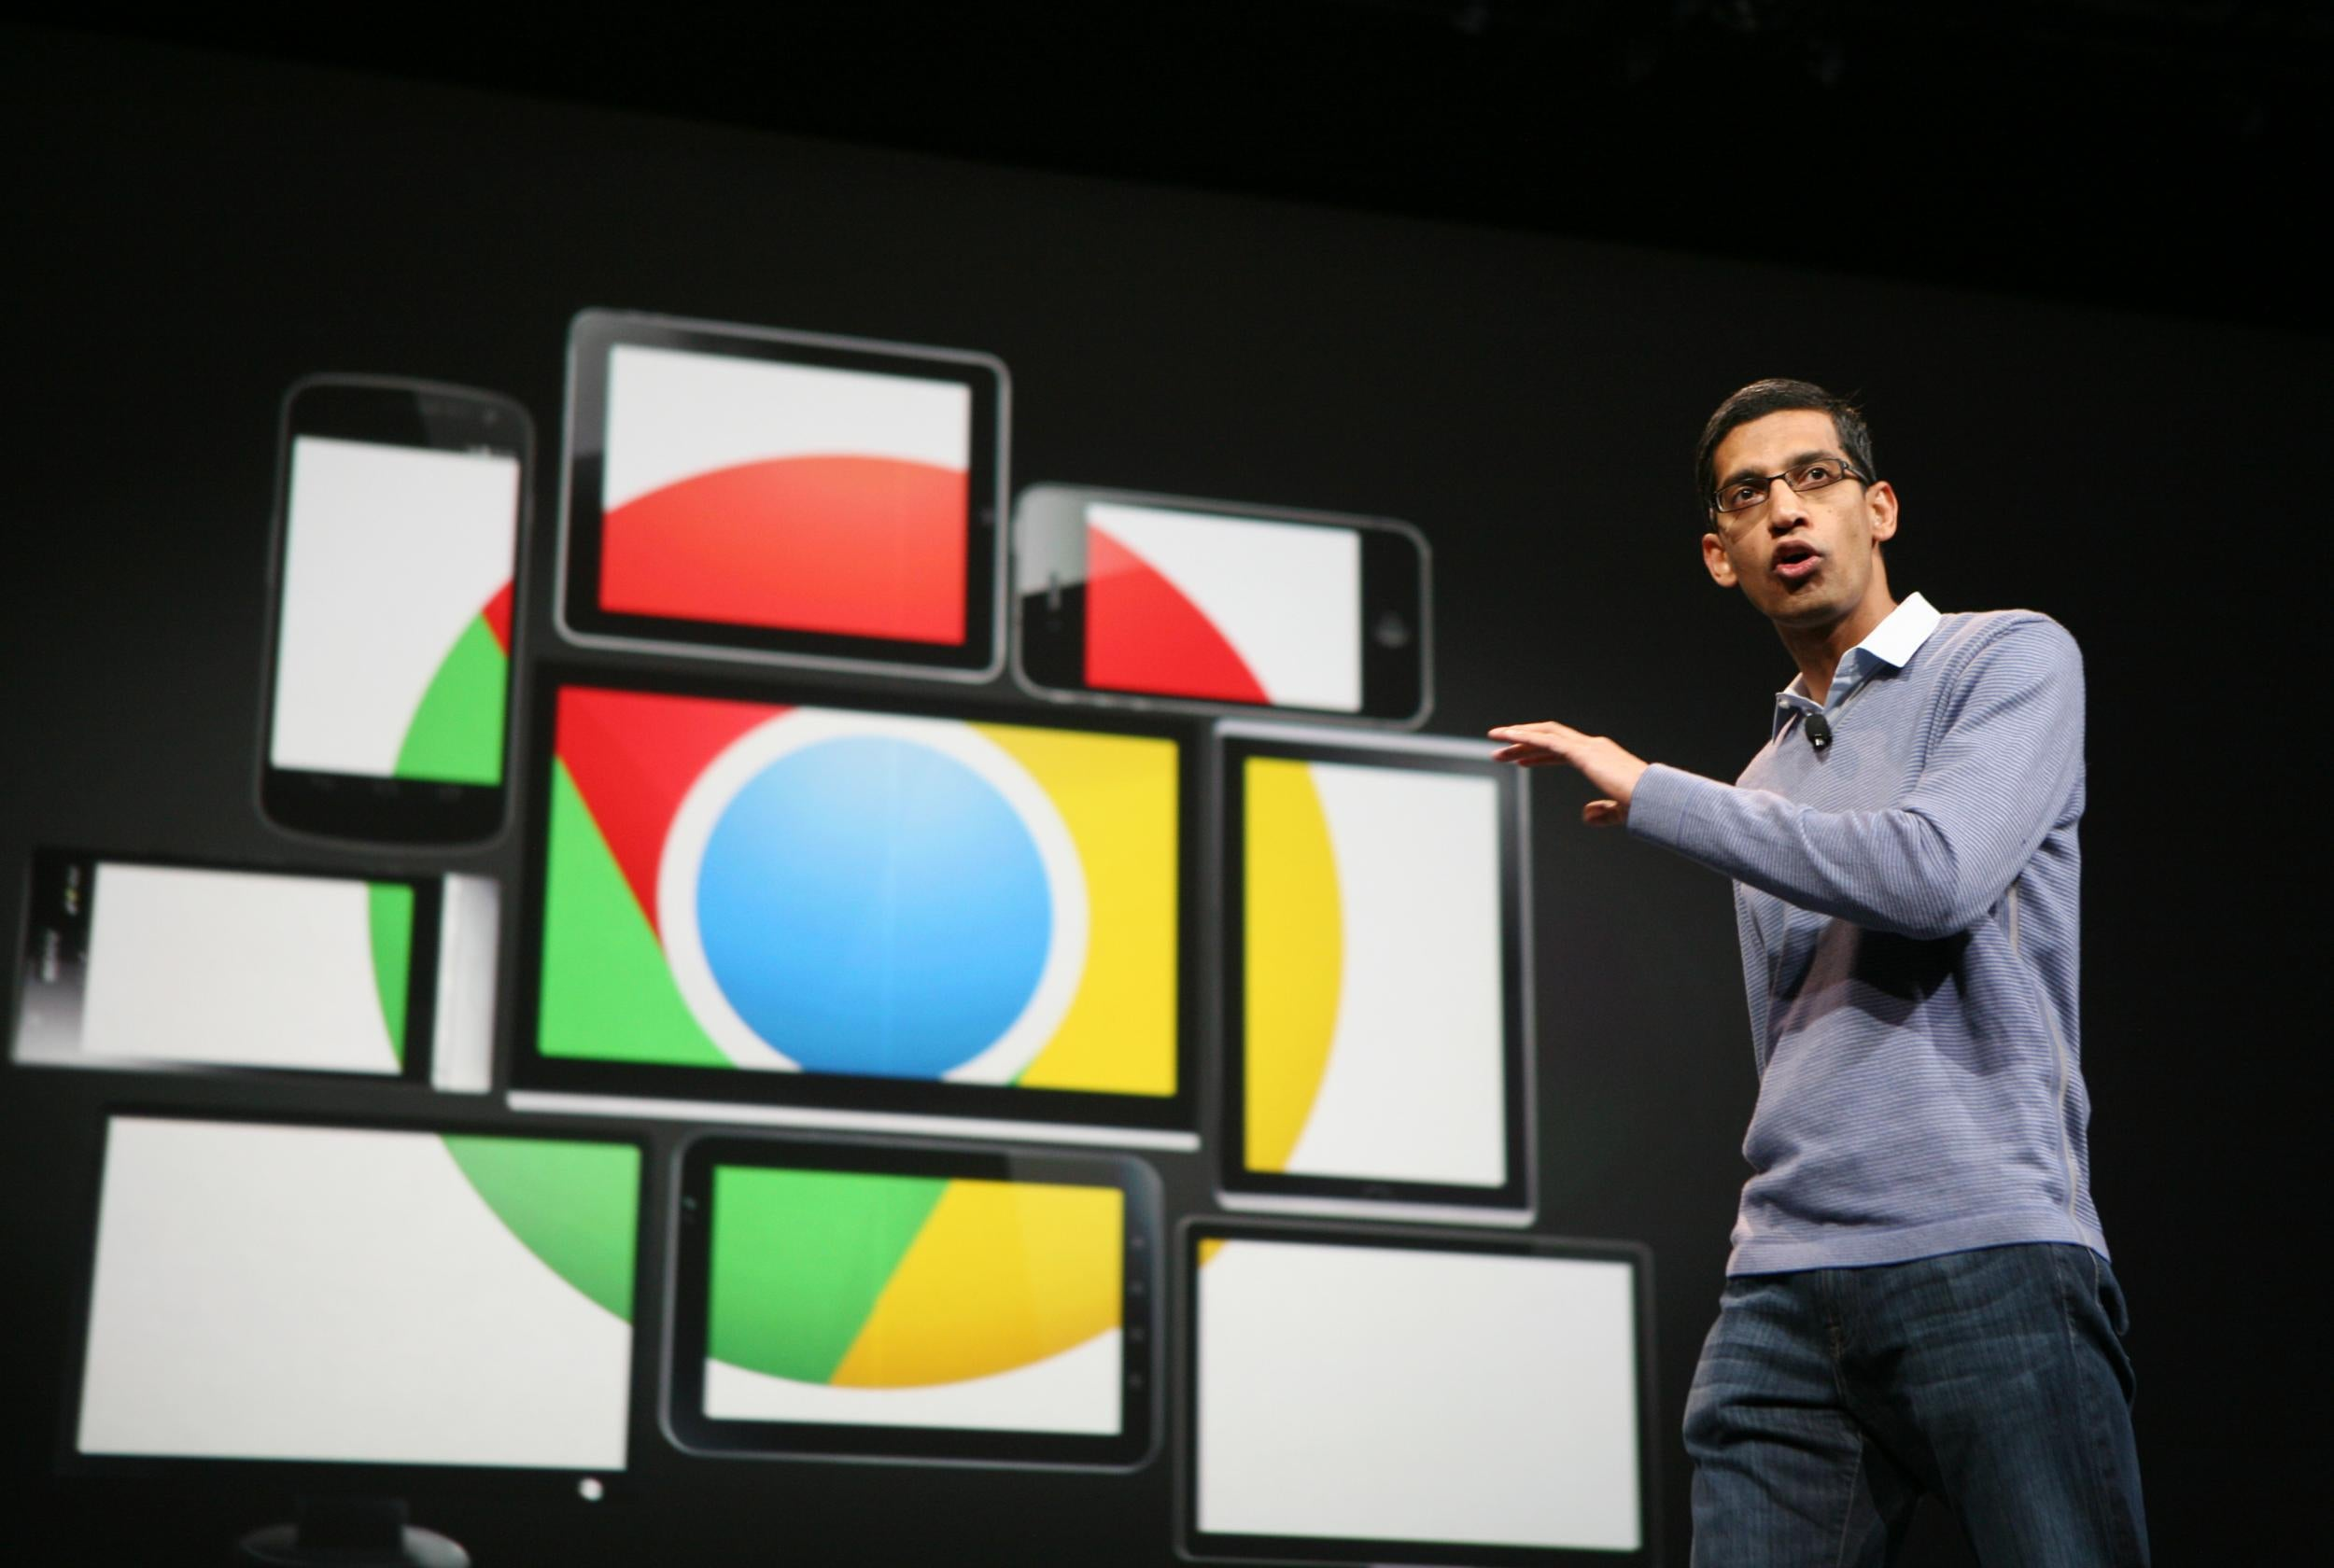 Managing tabs in Google Chrome can double your laptop battery life, developer finds